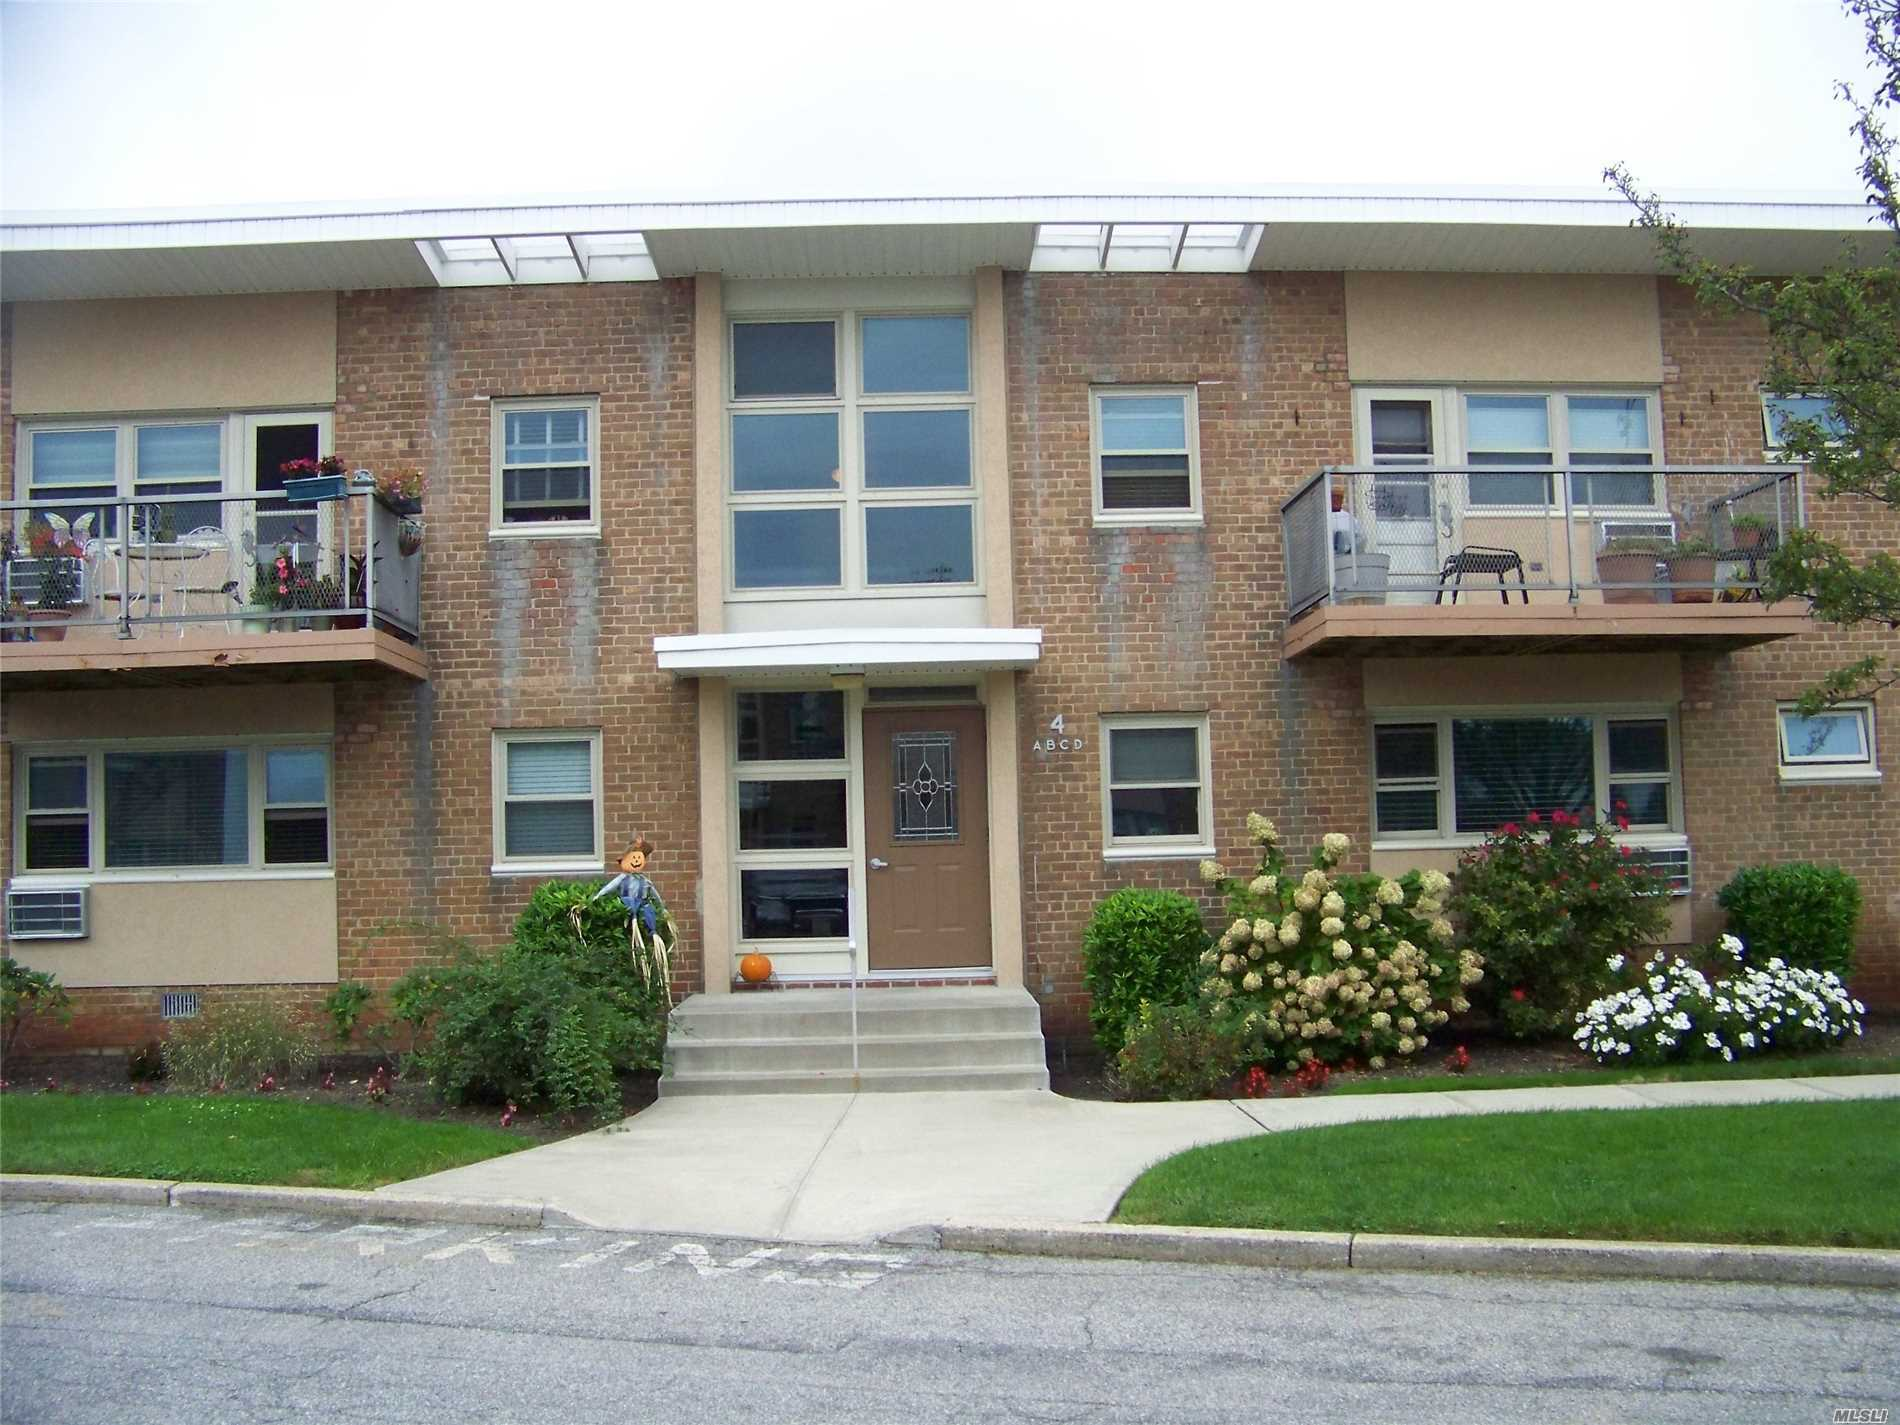 Fully Renovated 2 Bedroom Unit On 1st Floor With Water Views. Beautiful Open Kitchen With Breakfast Bar And Stainless Steel Appliances. Hardwood Floors Throughout, Freshly Painted. Parking Included, Laundry Facilities On Premises, Close To Lirr, Shopping And Restaurants. Boat Slip, Bike Shed And Extra Parking Available For An Additional Fee. Newly Updated Gym, Inground Pool, And Pet Friendly Development With Dog Run.